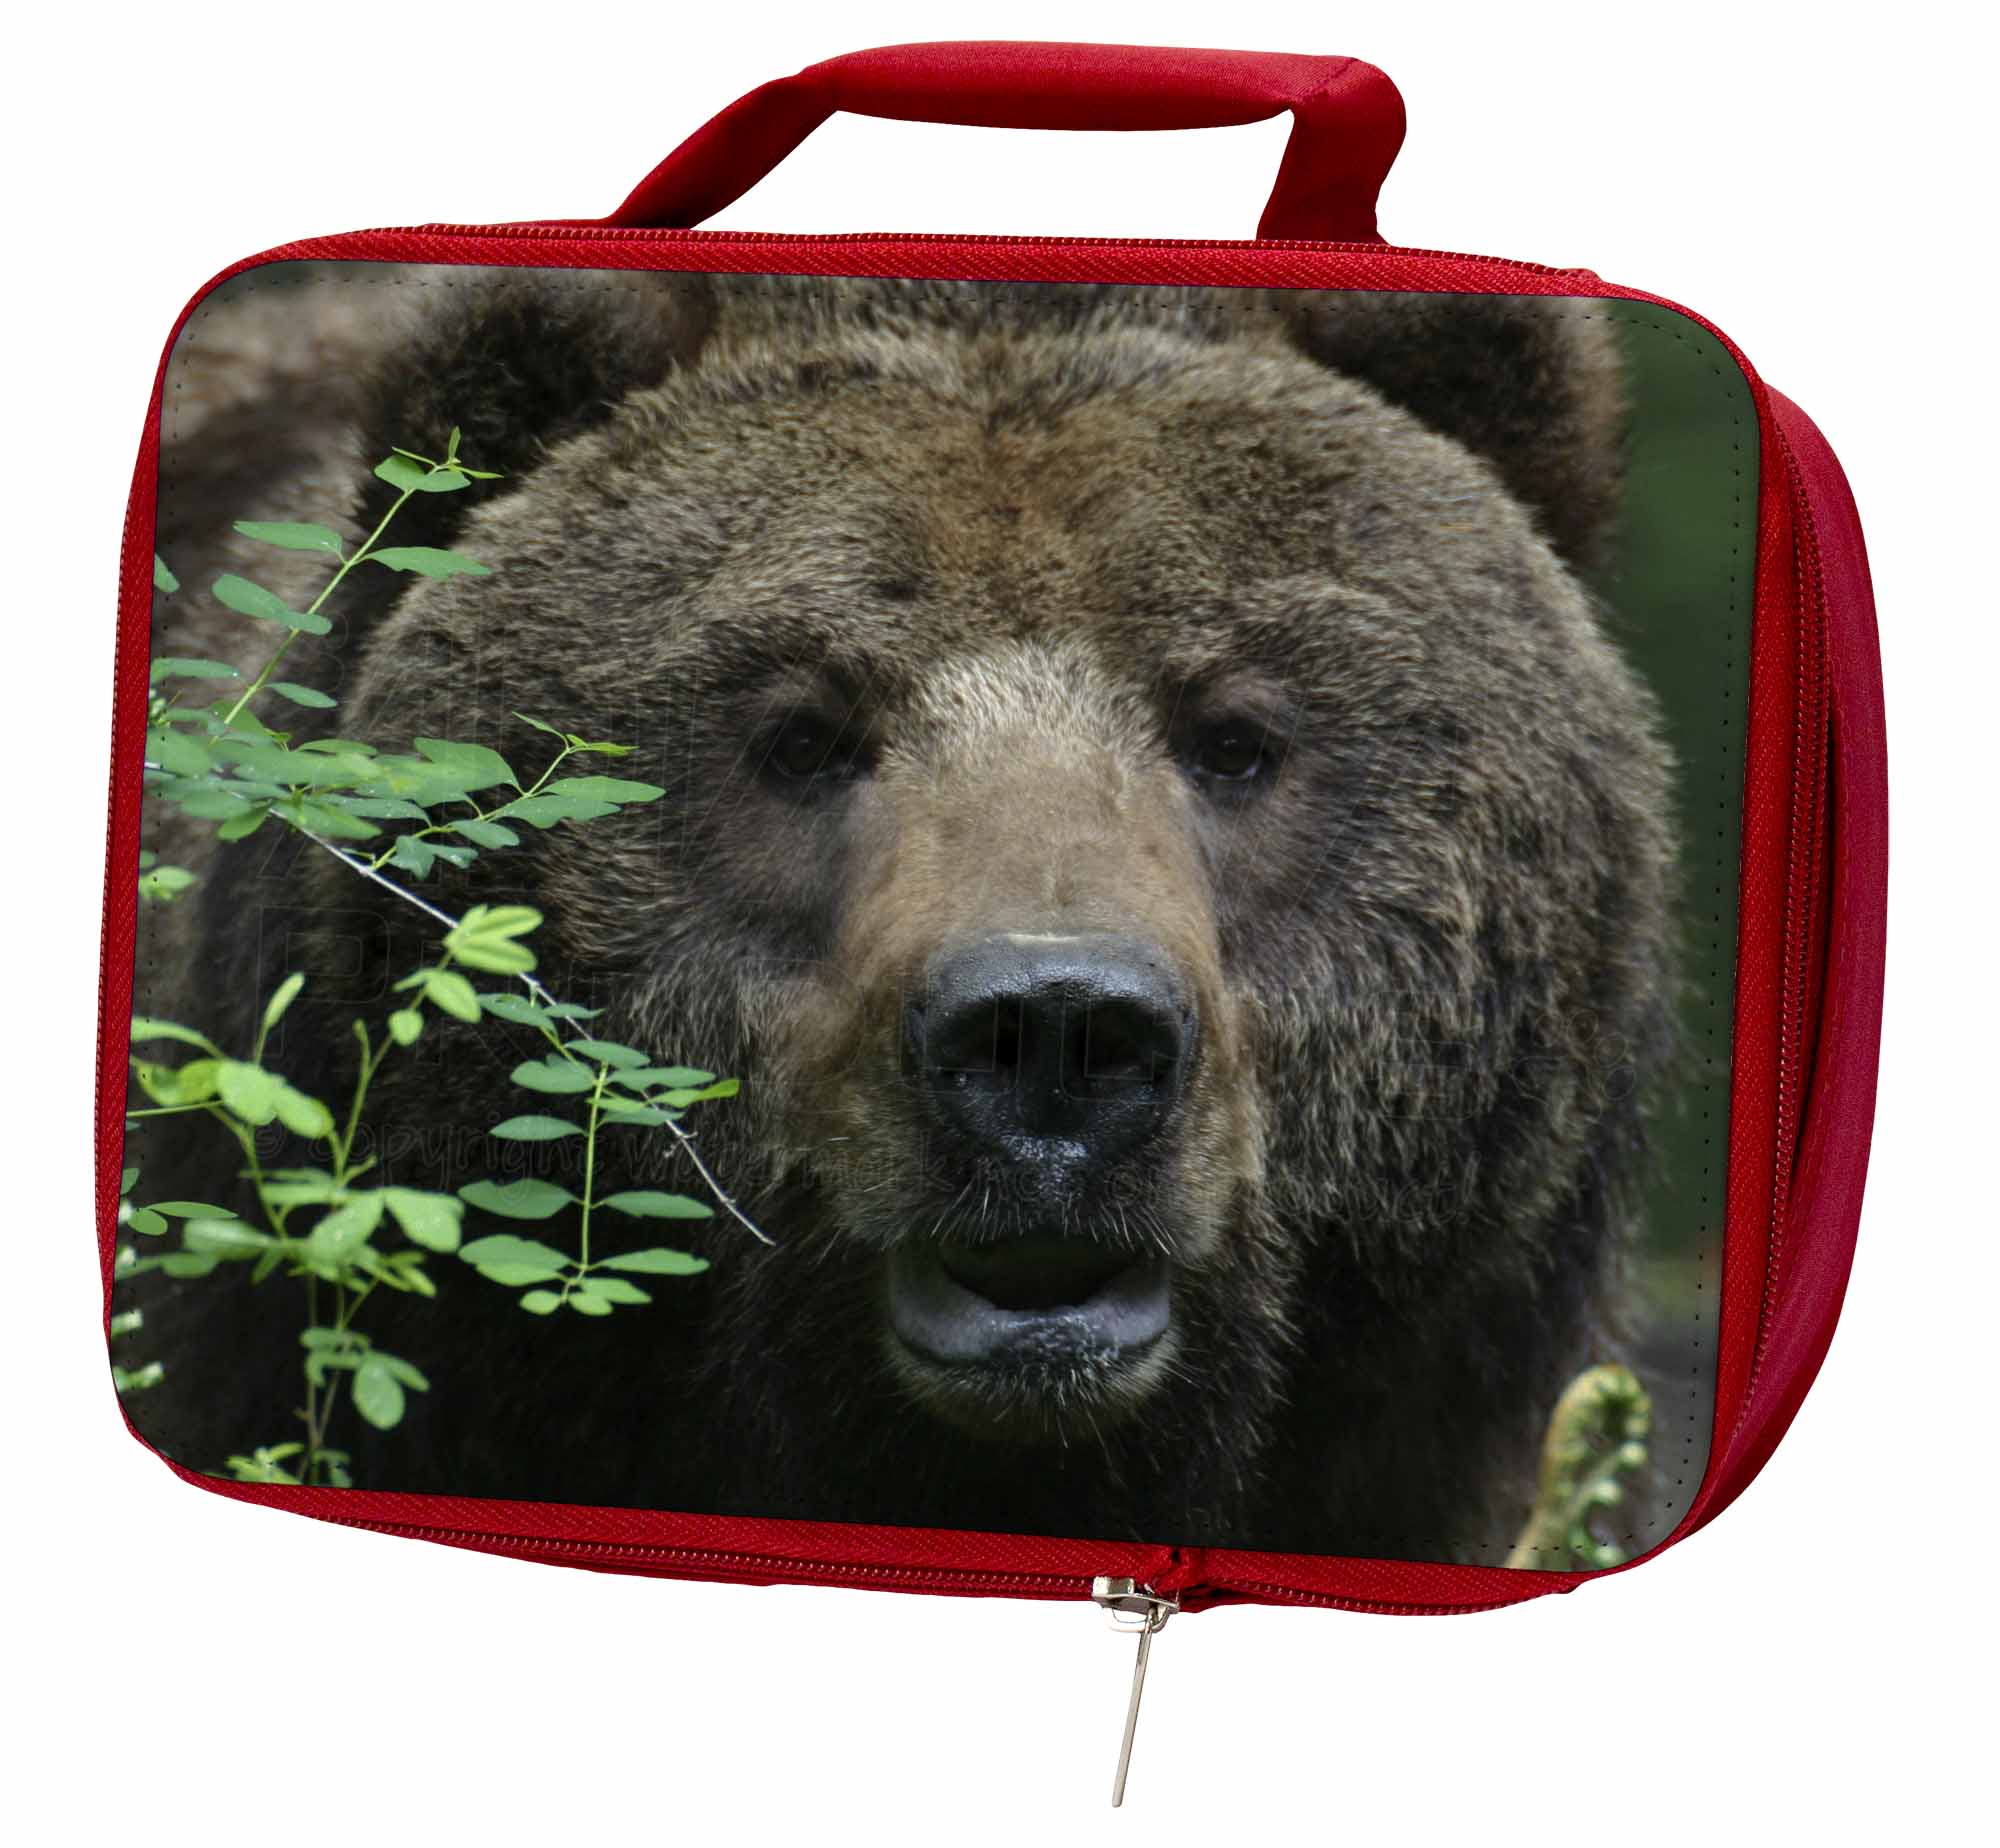 Beautiful Brown Bear Insulated Lunch Red School Lunch Insulated Box/Picnic Bag, ABE-2LBR b17fff